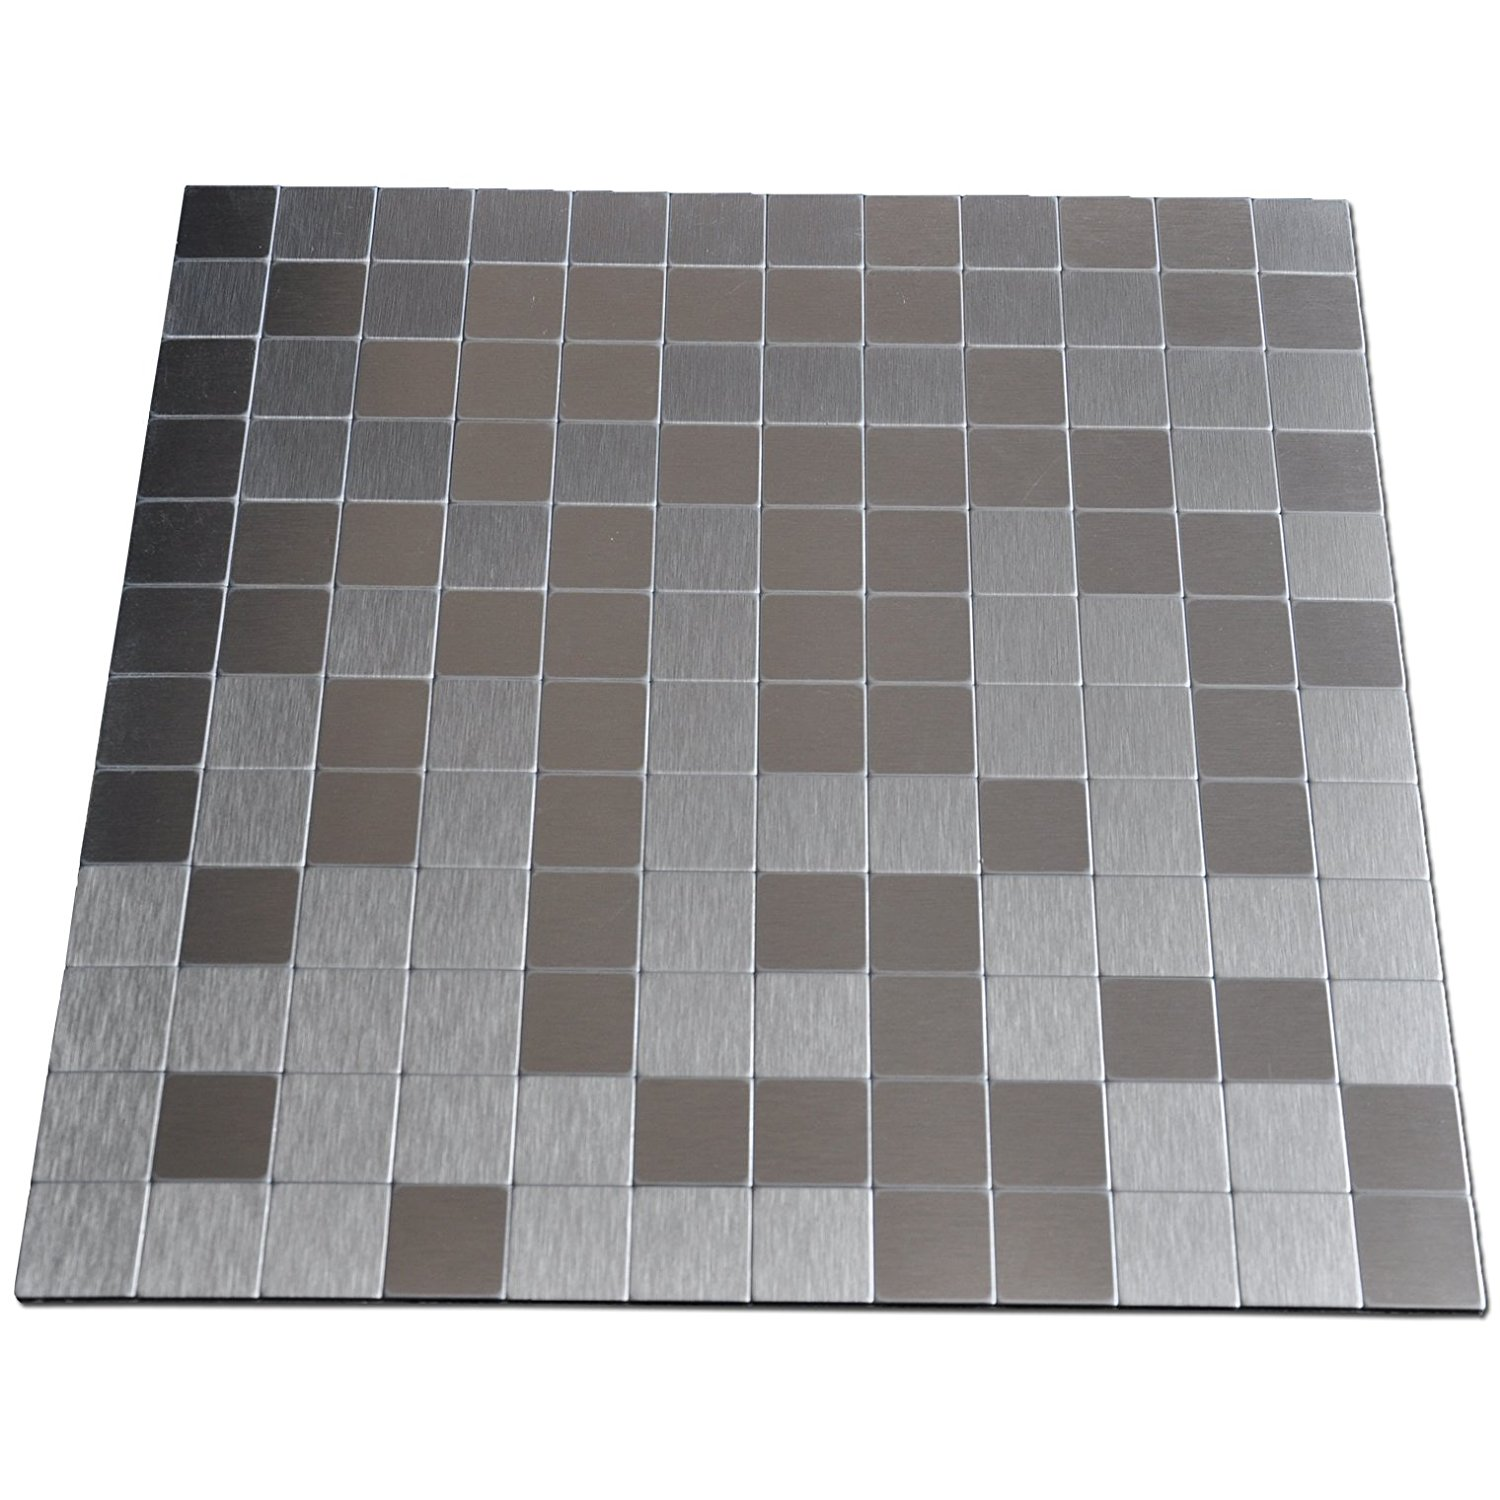 Metal Tiles | The Tile Home Guide